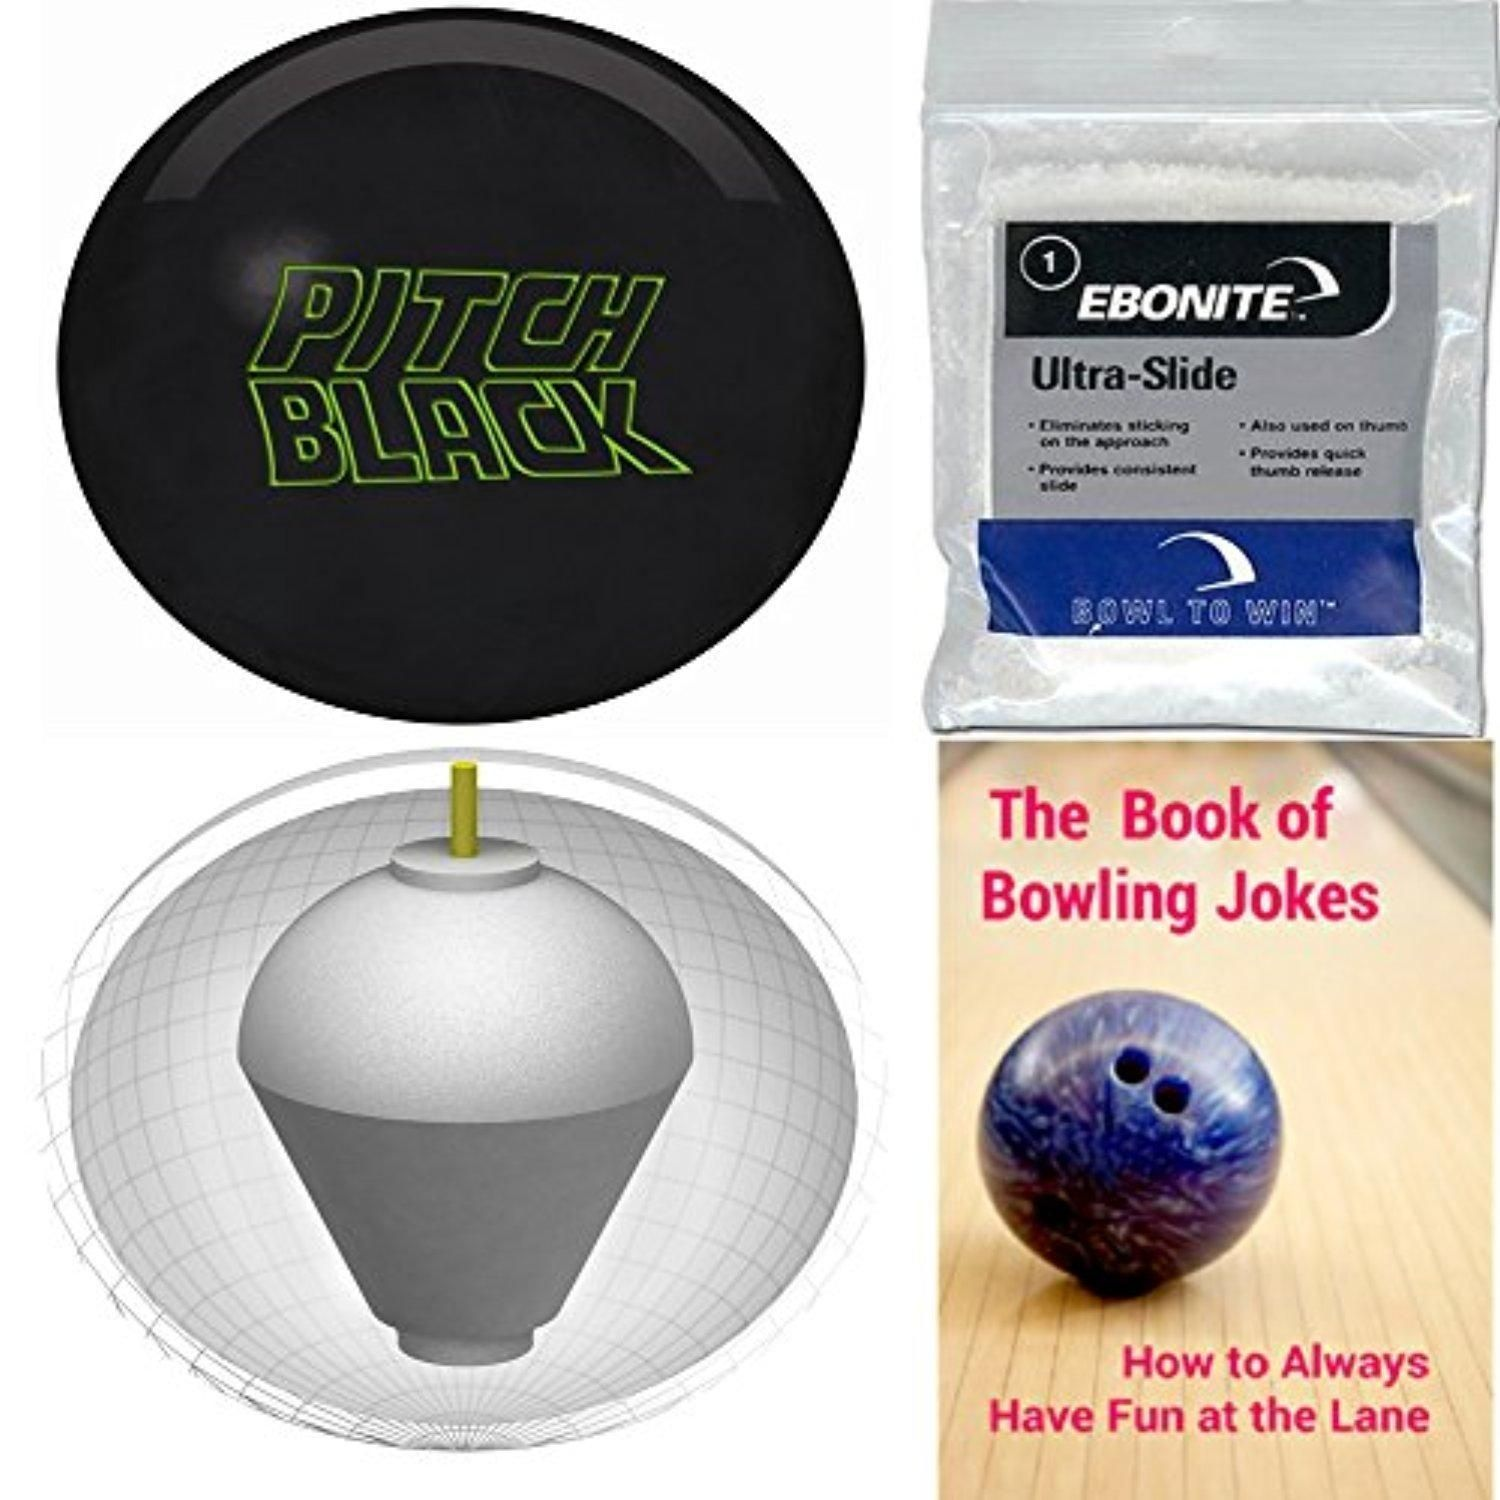 Brought To You By Avarsha Com Div Div The Capacitor Core Helps You Regulate Your Flare Potential Making You The Bowling Bowling Ball How To Memorize Things